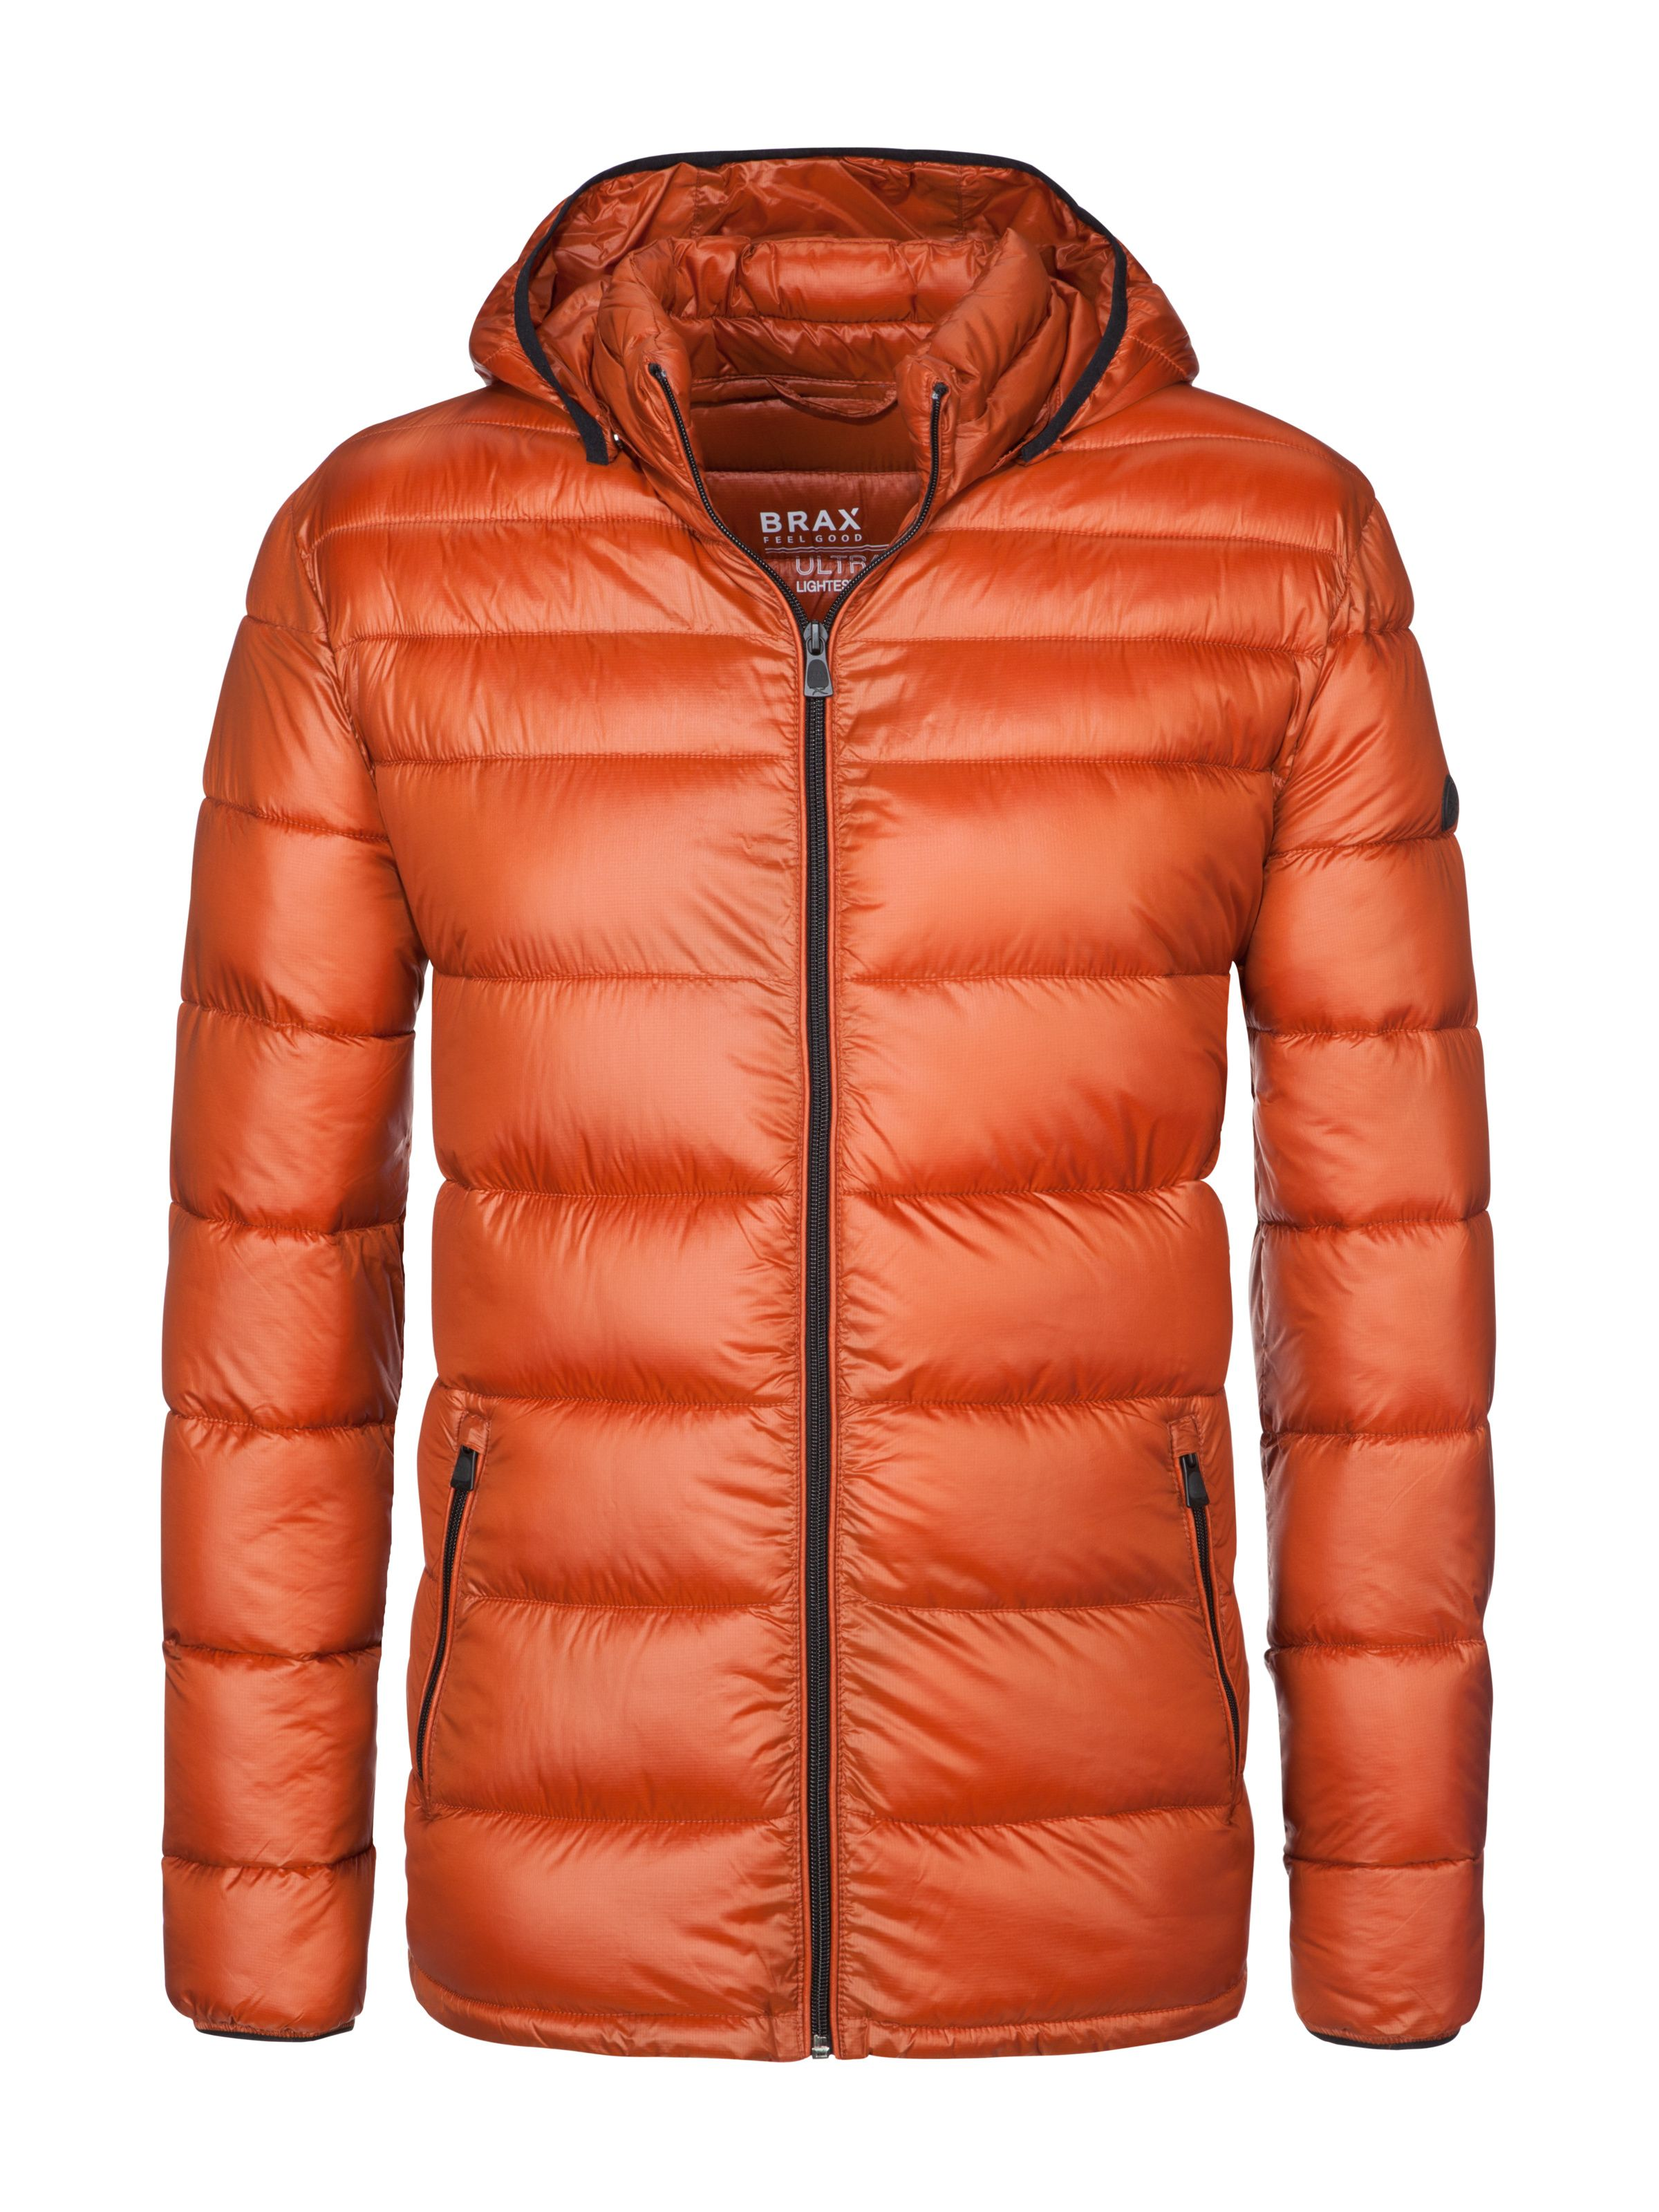 Brax Winterjacke, Dickson, orange in 2020 | Jacken